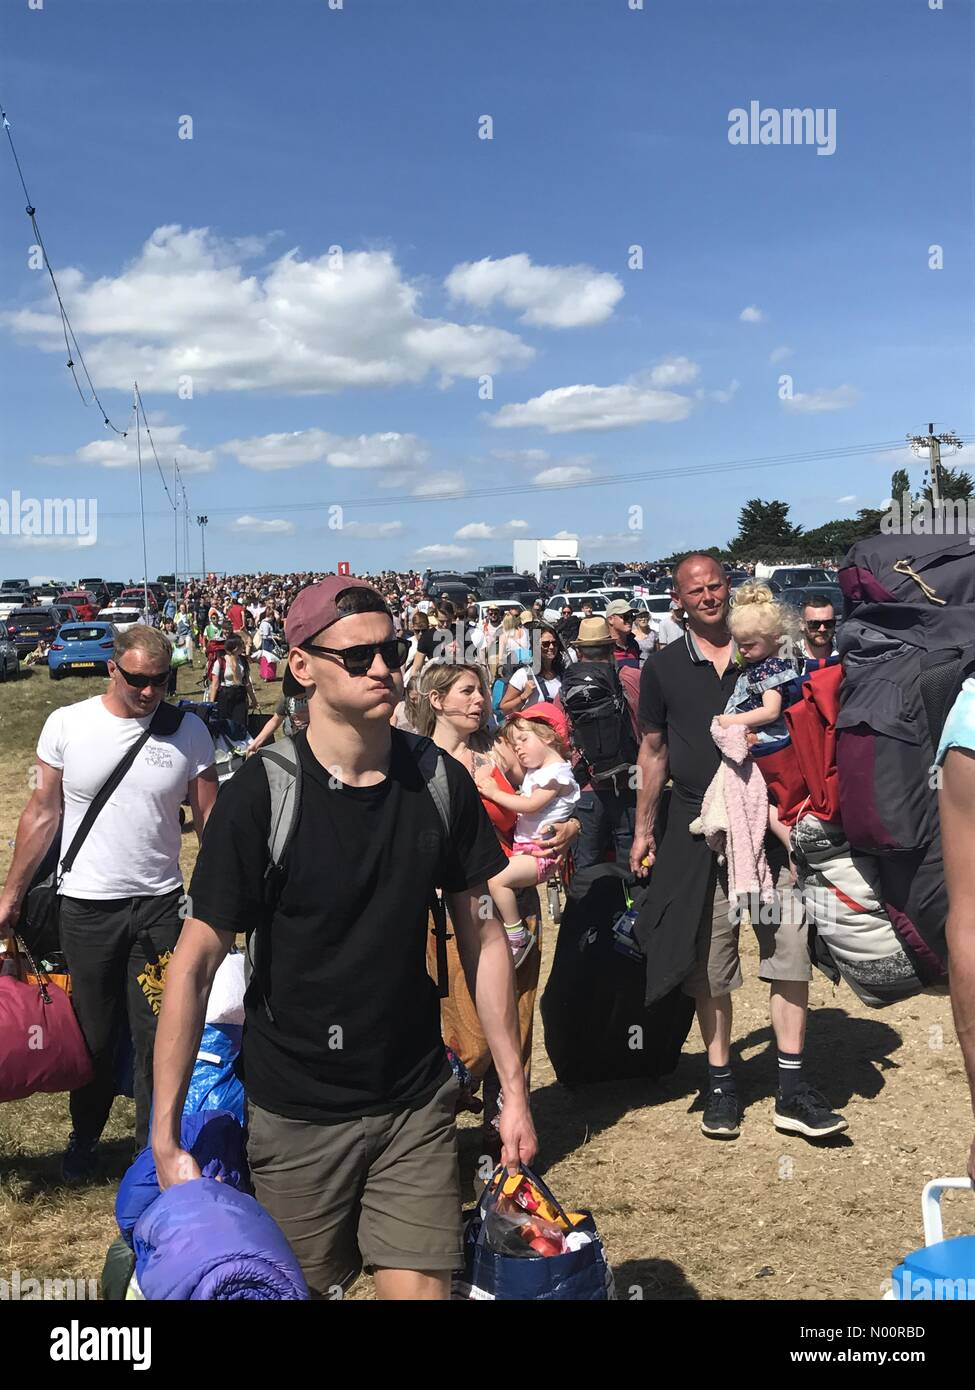 East Cowes, Newport, UK. 21st June, 2018. Seaclose Park, Newport, Isle of Wight. 21st Jun 2018. Hundreds of festival-goers enter the Isle of Wight festival site after a long wait in the heat. Credit: amylaura/StockimoNews Credit: amylaura/StockimoNews/Alamy Live News - Stock Image